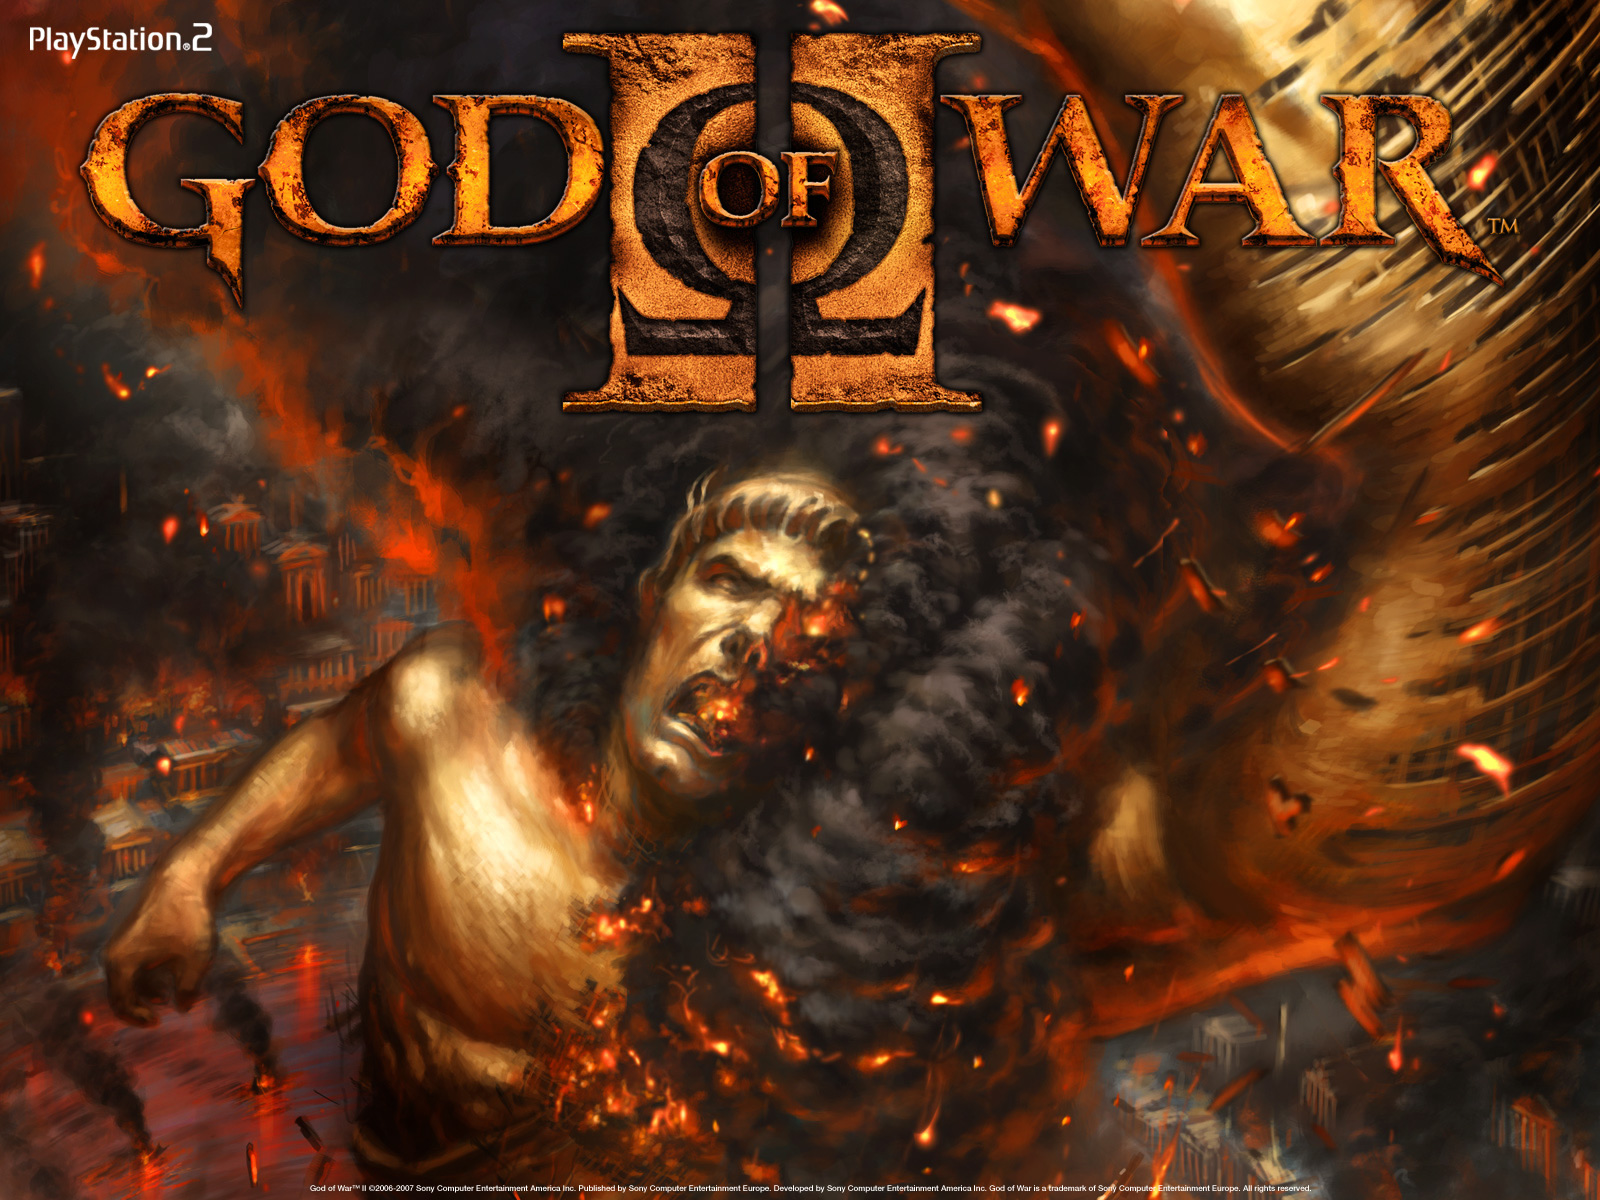 God of war chains of olympus (usa) iso < psp isos | emuparadise.